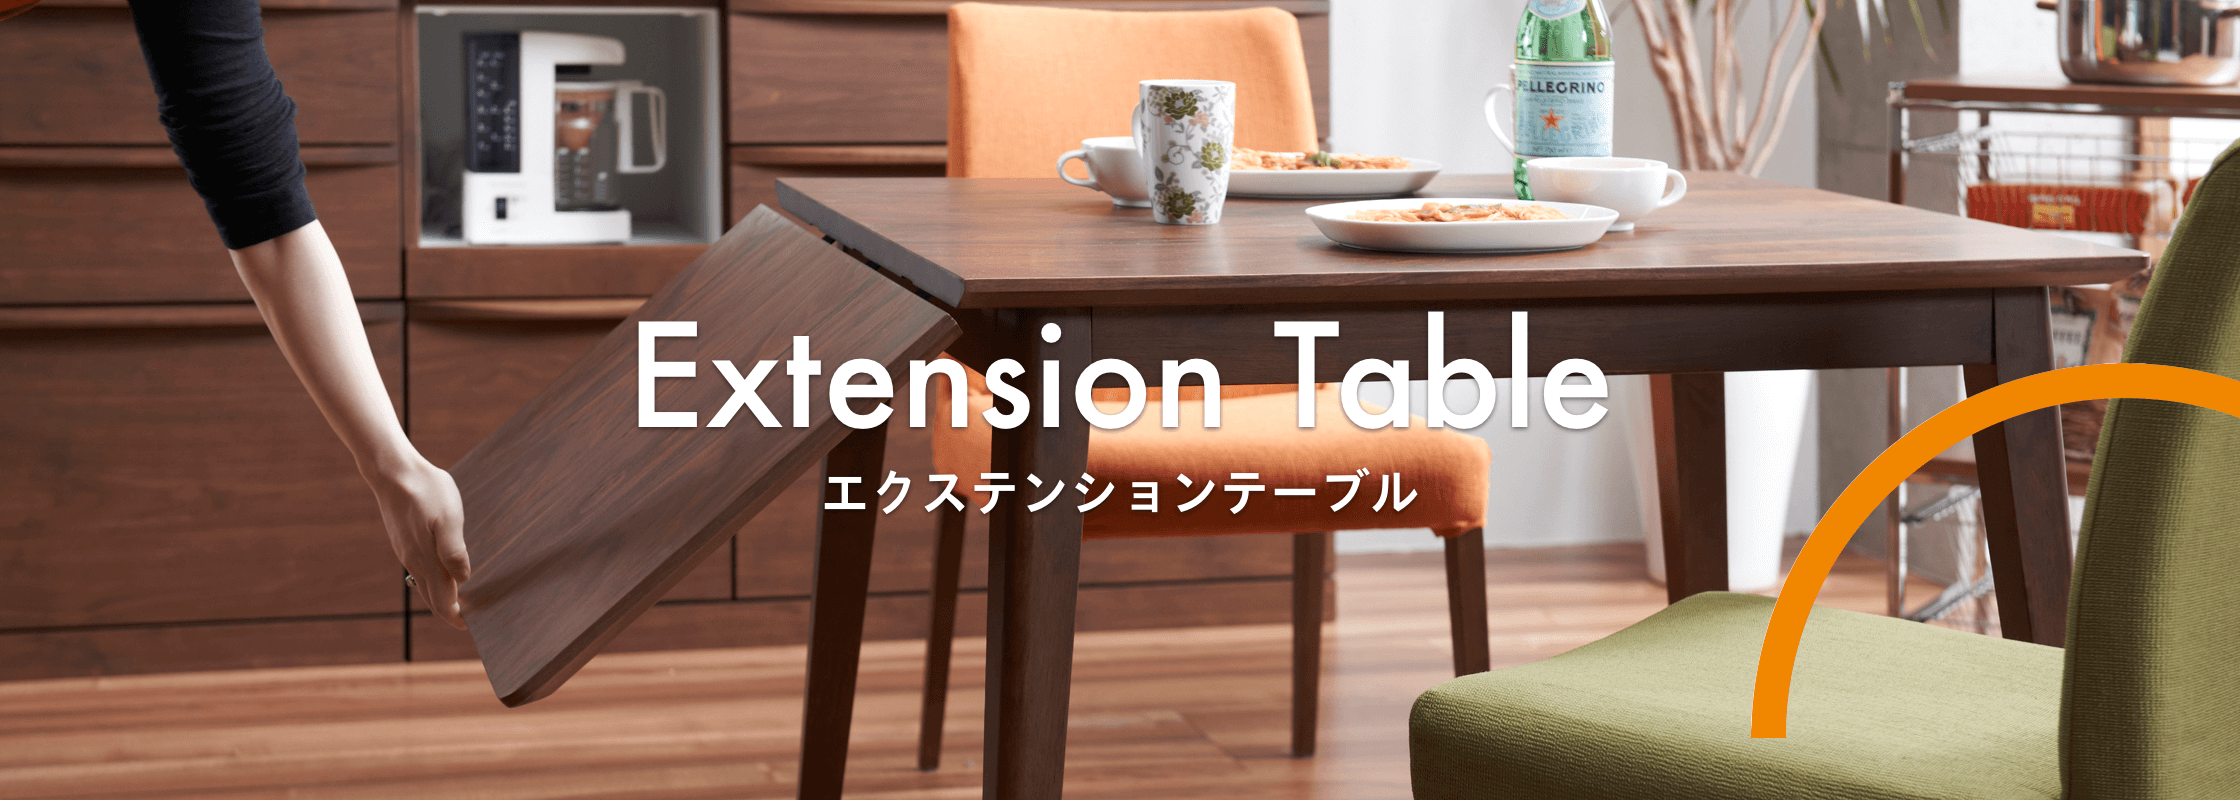 extension table 詳細 TOP